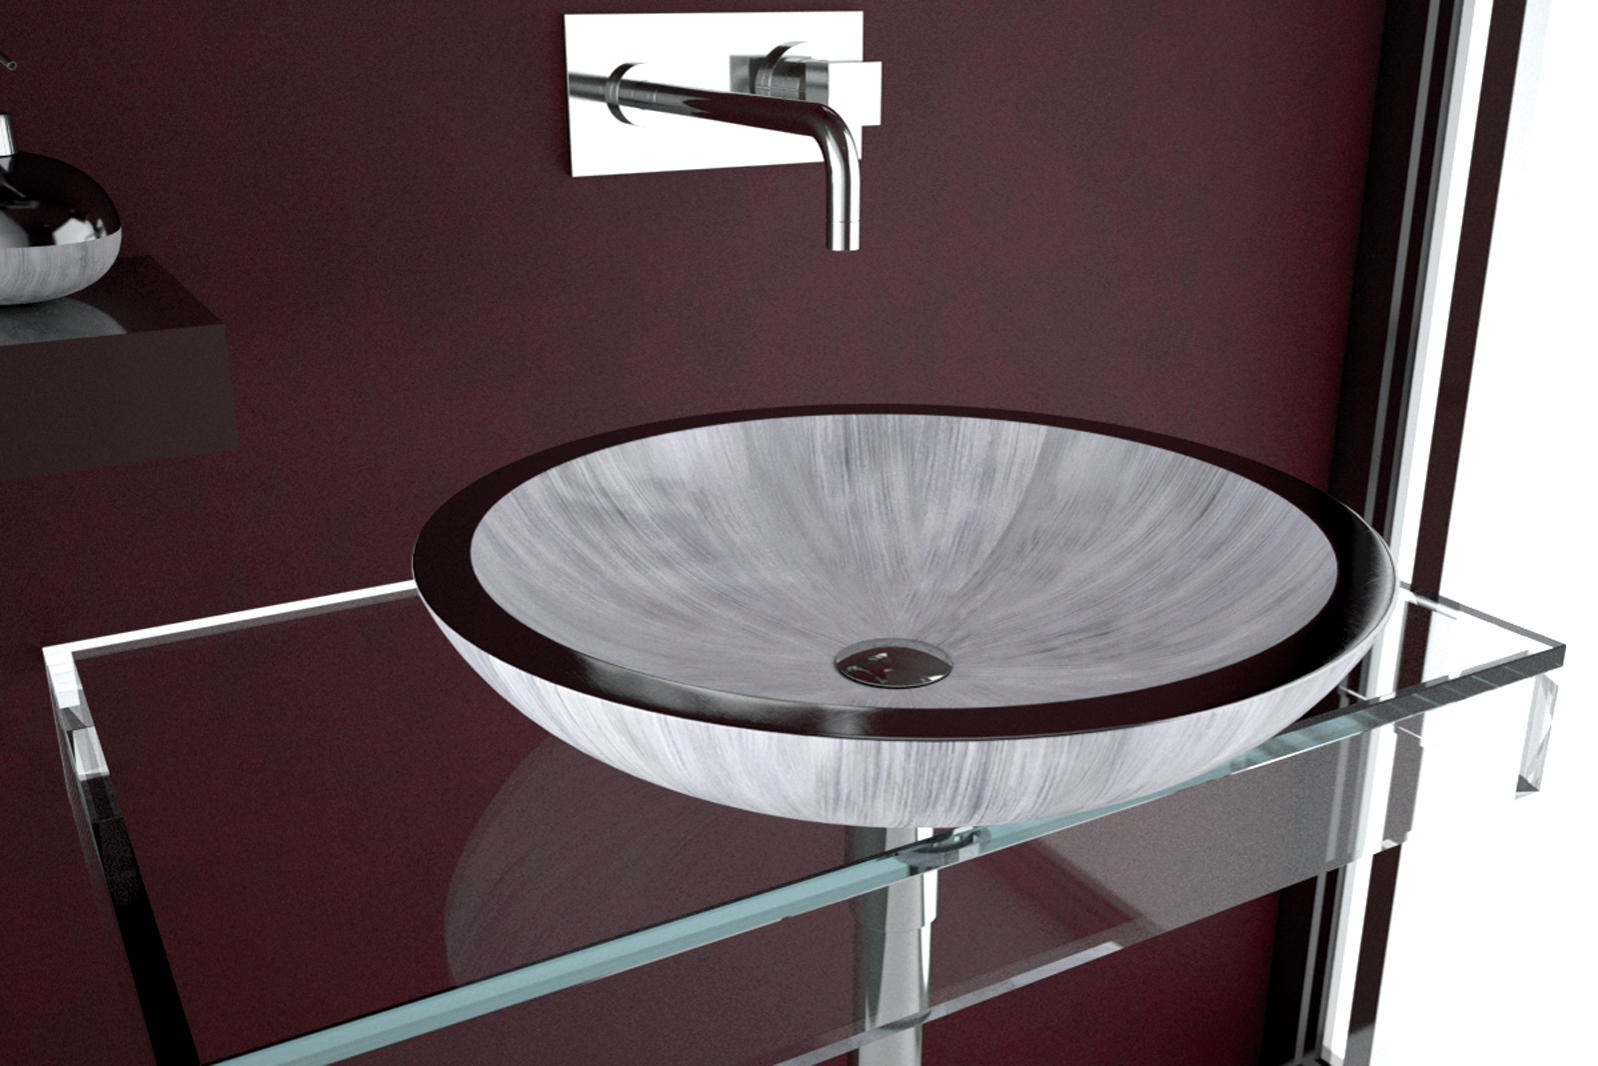 ROUND - Wash basins from Glass Design | Architonic